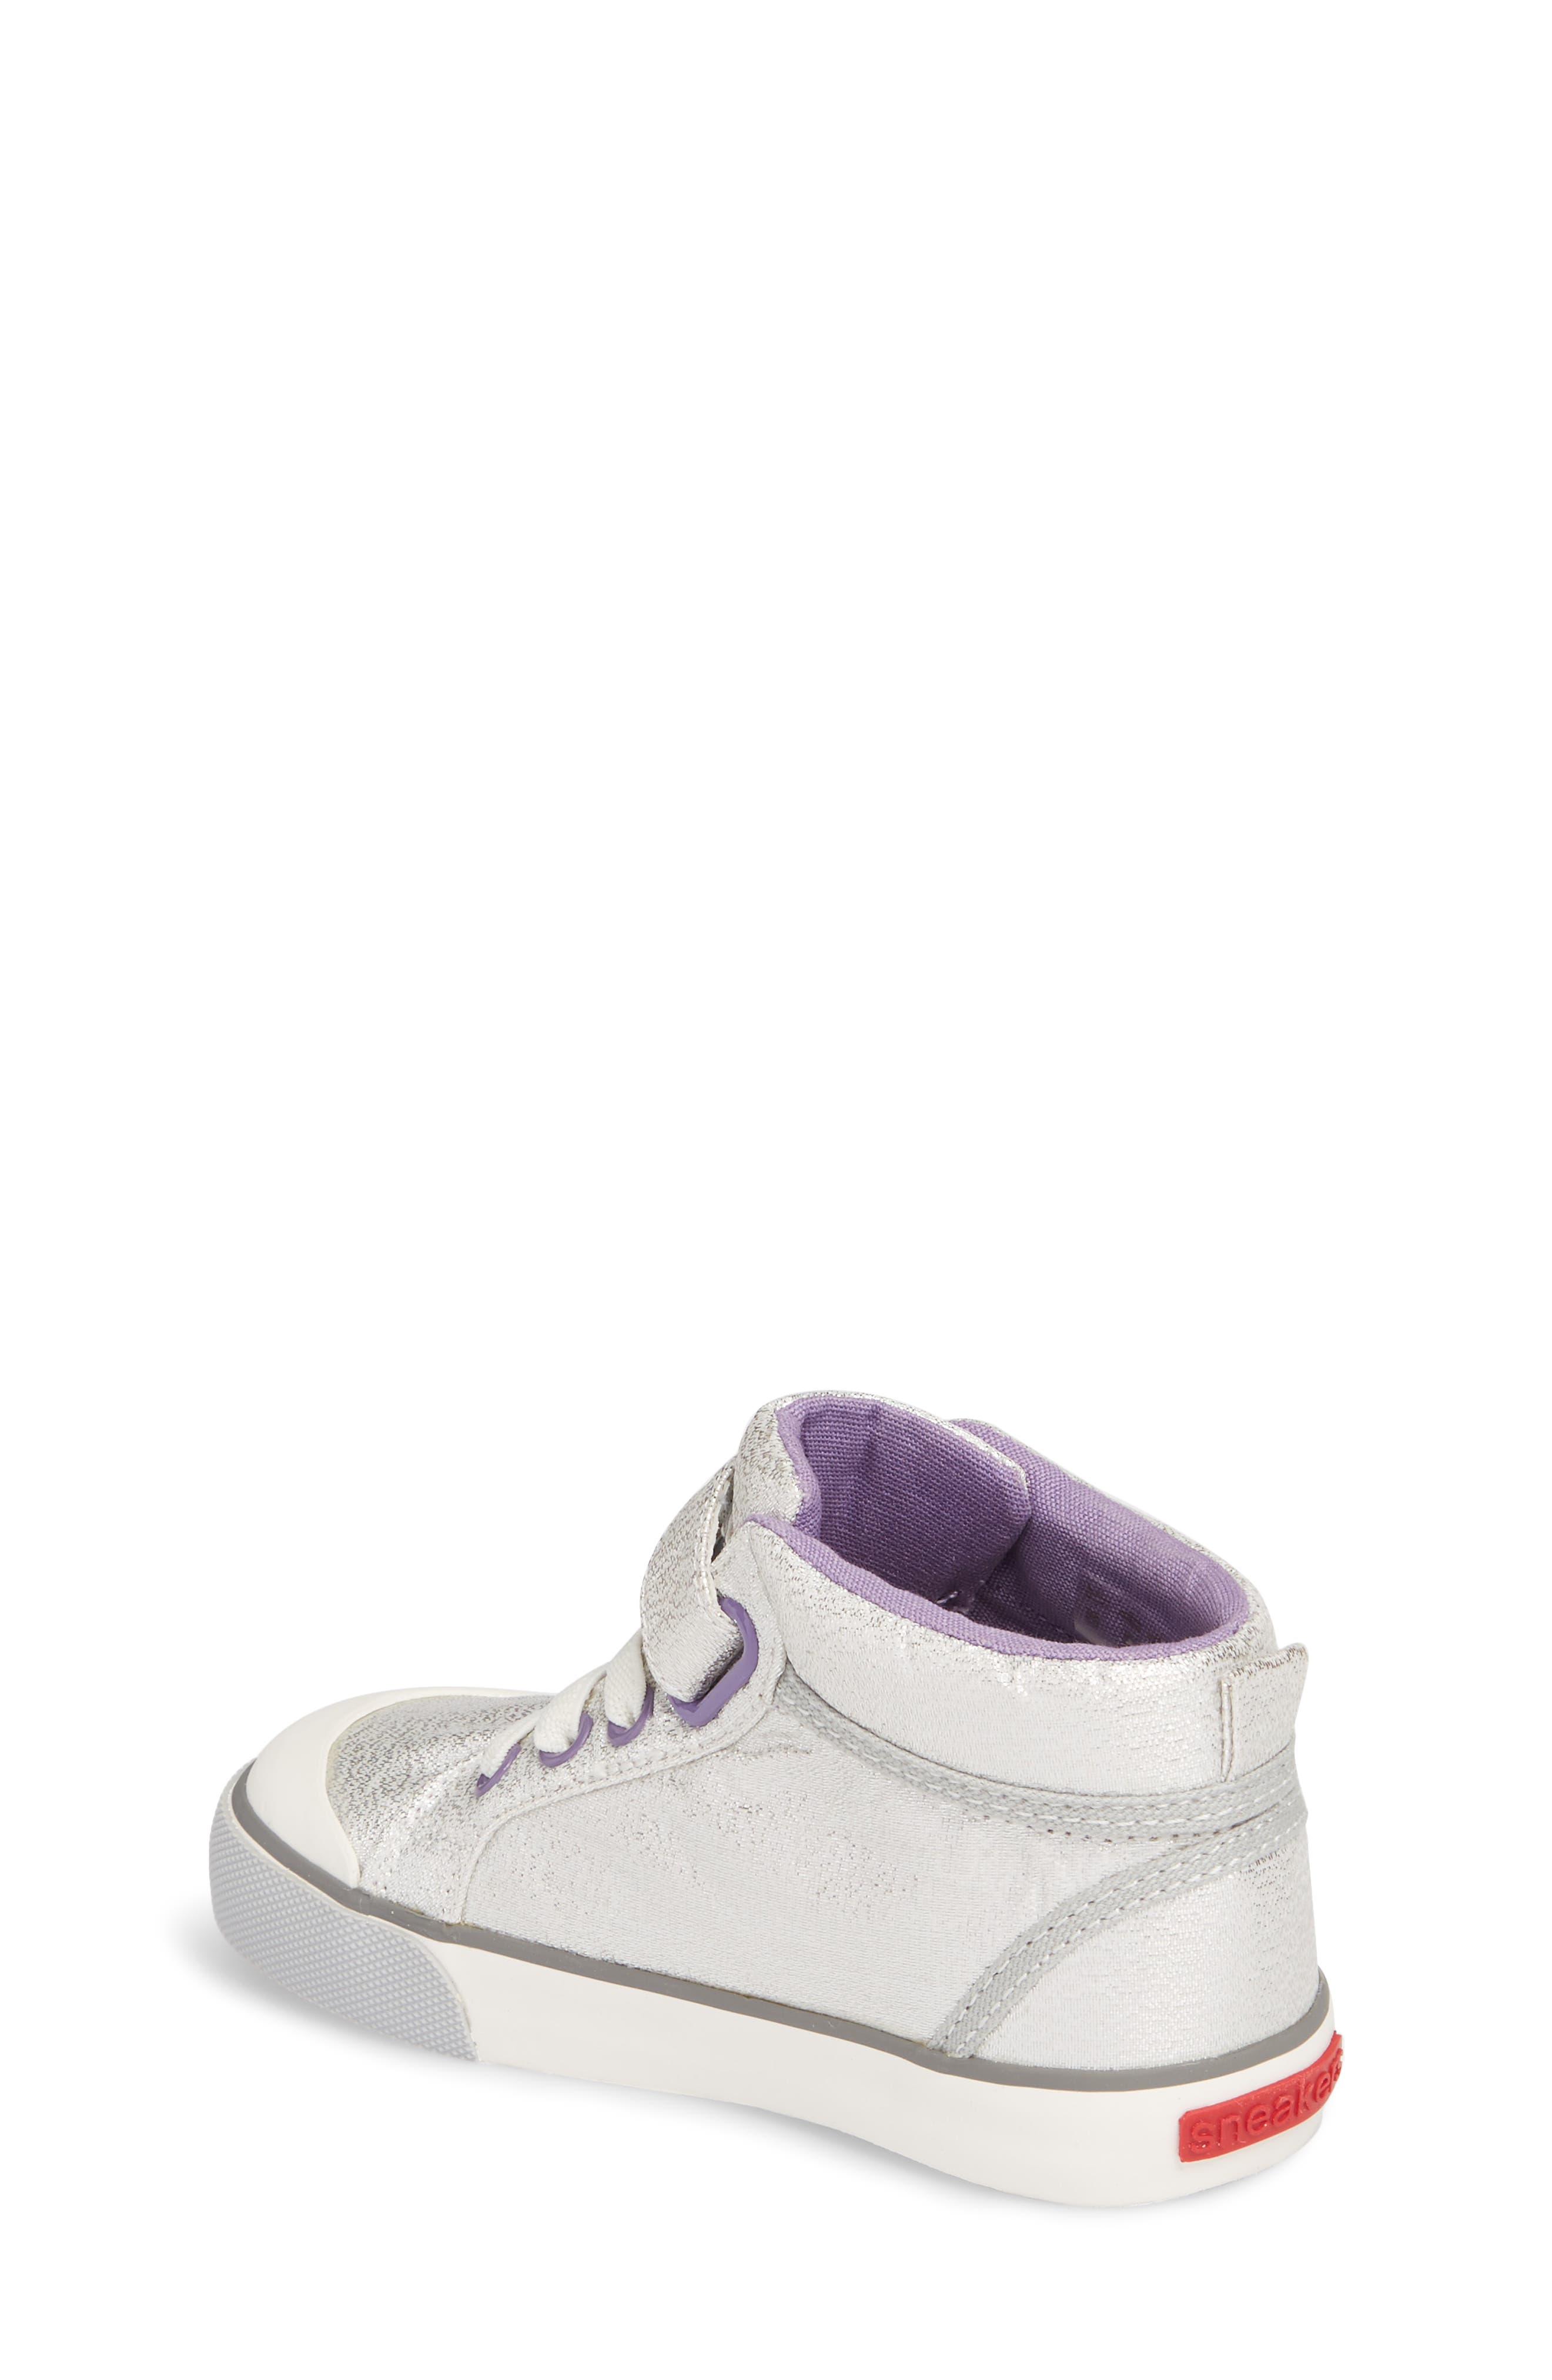 Alternate Image 2  - See Kai Run Peyton Metallic Mid Top Sneaker (Baby, Walker, Toddler & Little Kid)